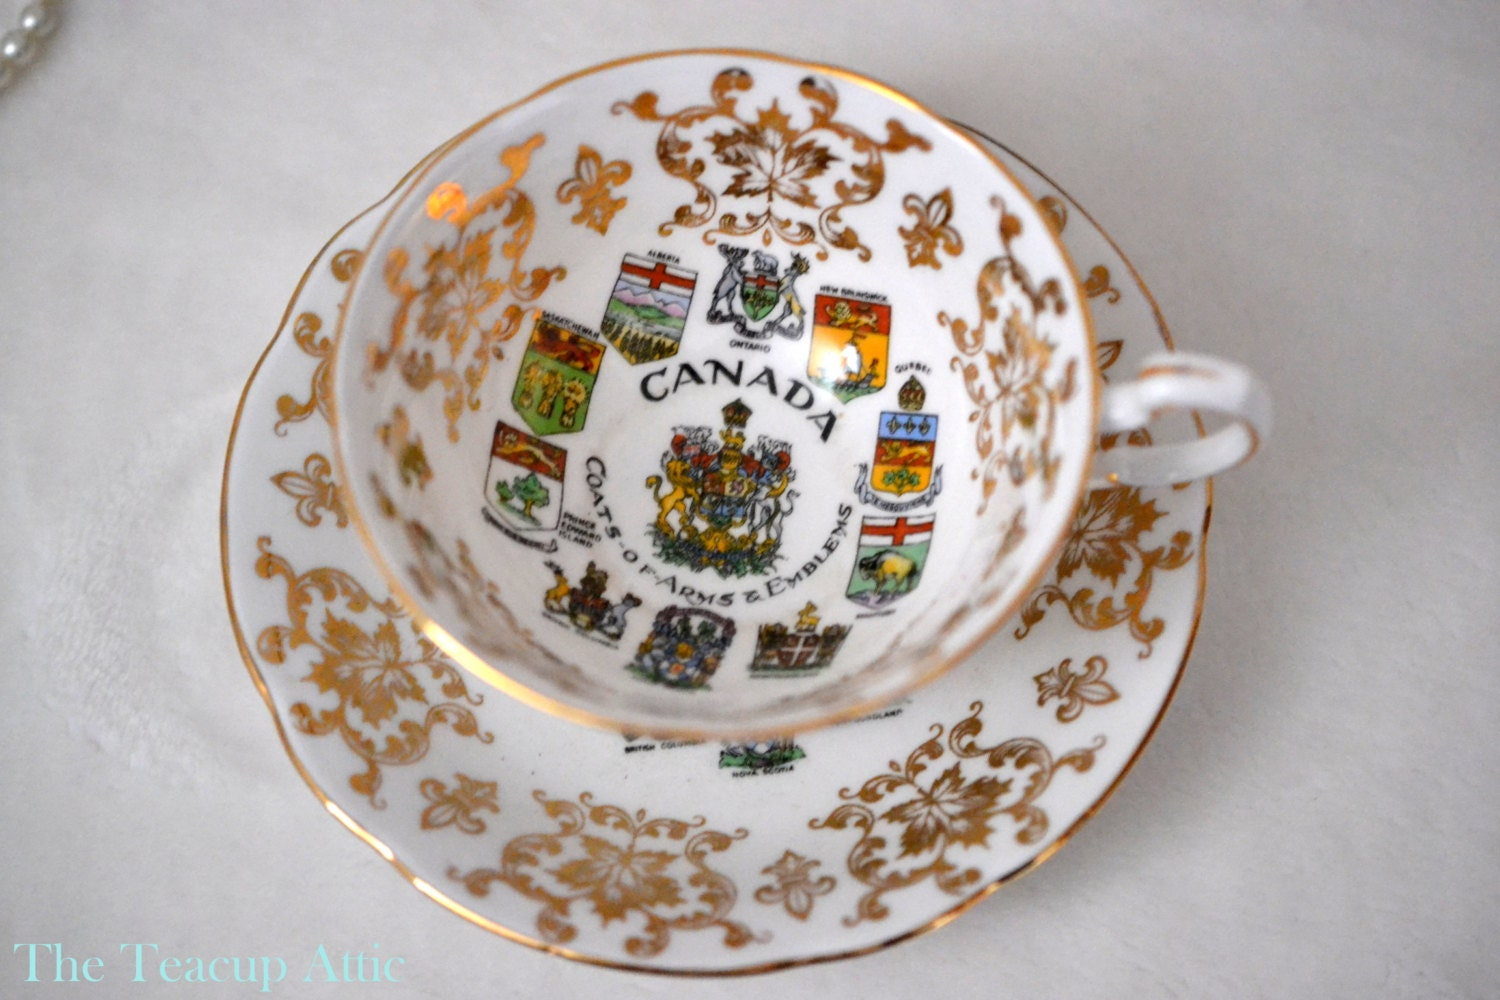 Paragon Canadian Provincial Emblems Teacup and Saucer Set, Coat of Arms and Emblems English Bone China, ca. 1953